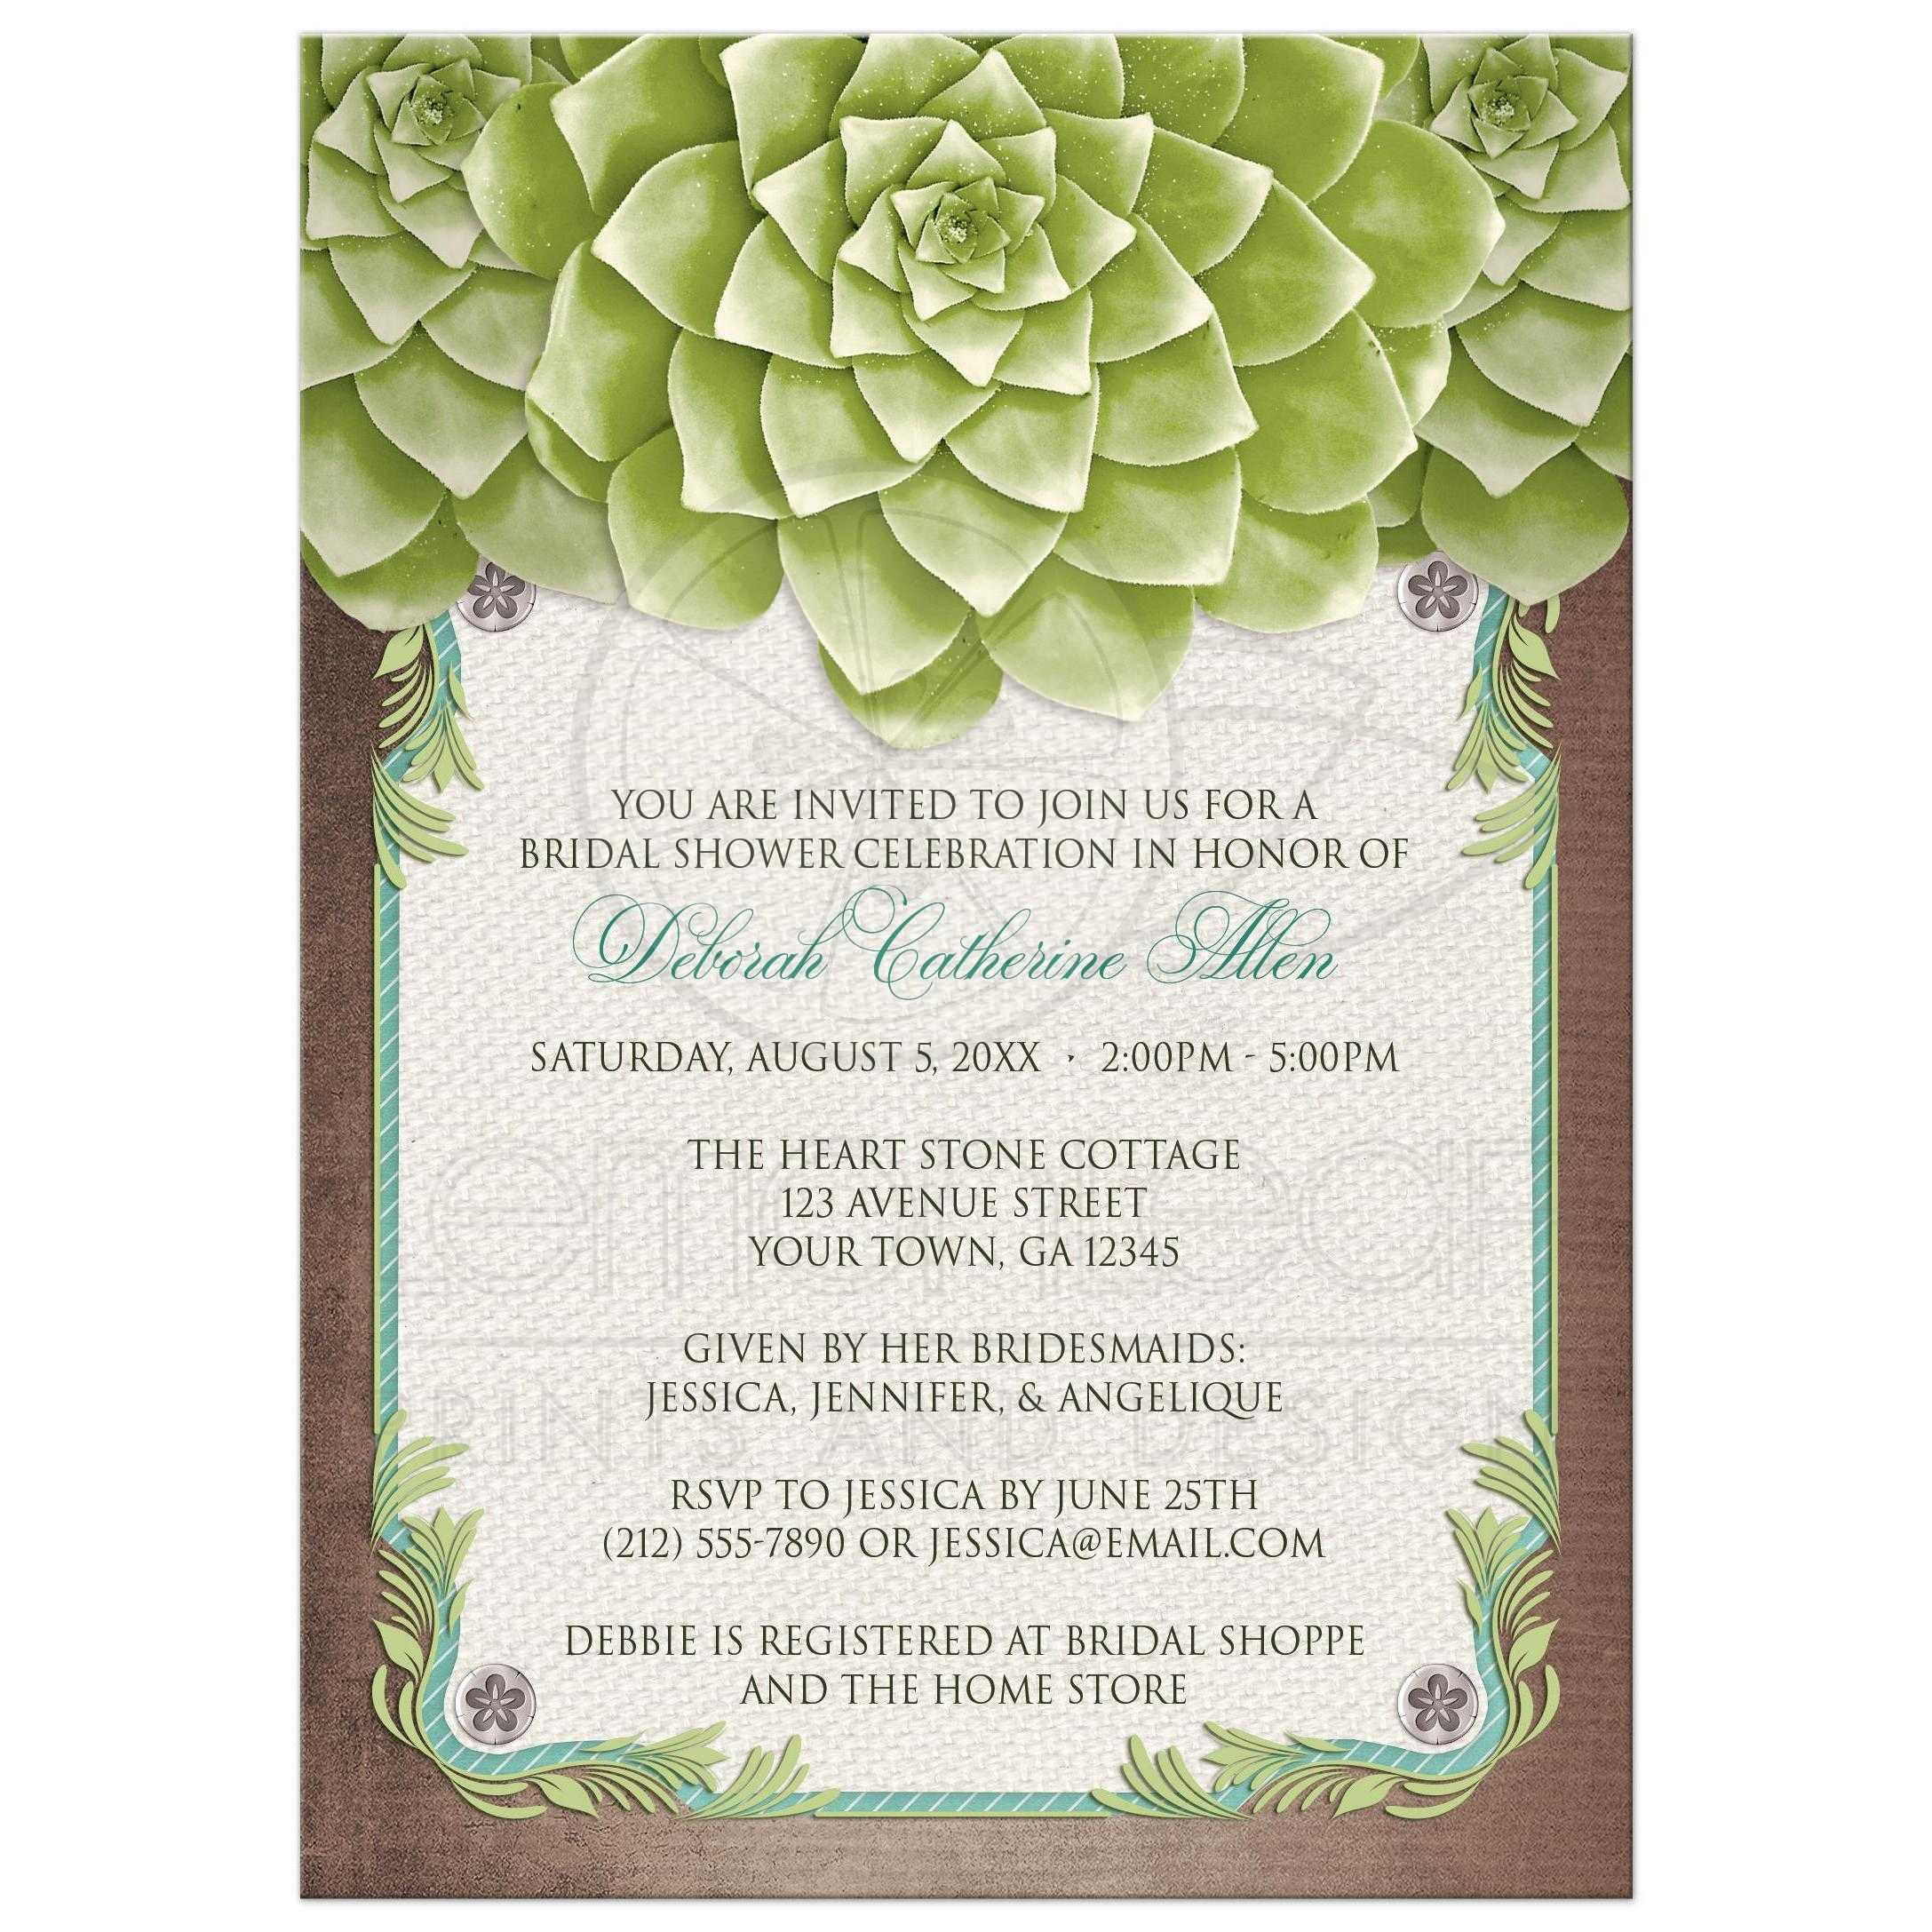 Bridal Shower Invitations - Rustic Succulent Garden